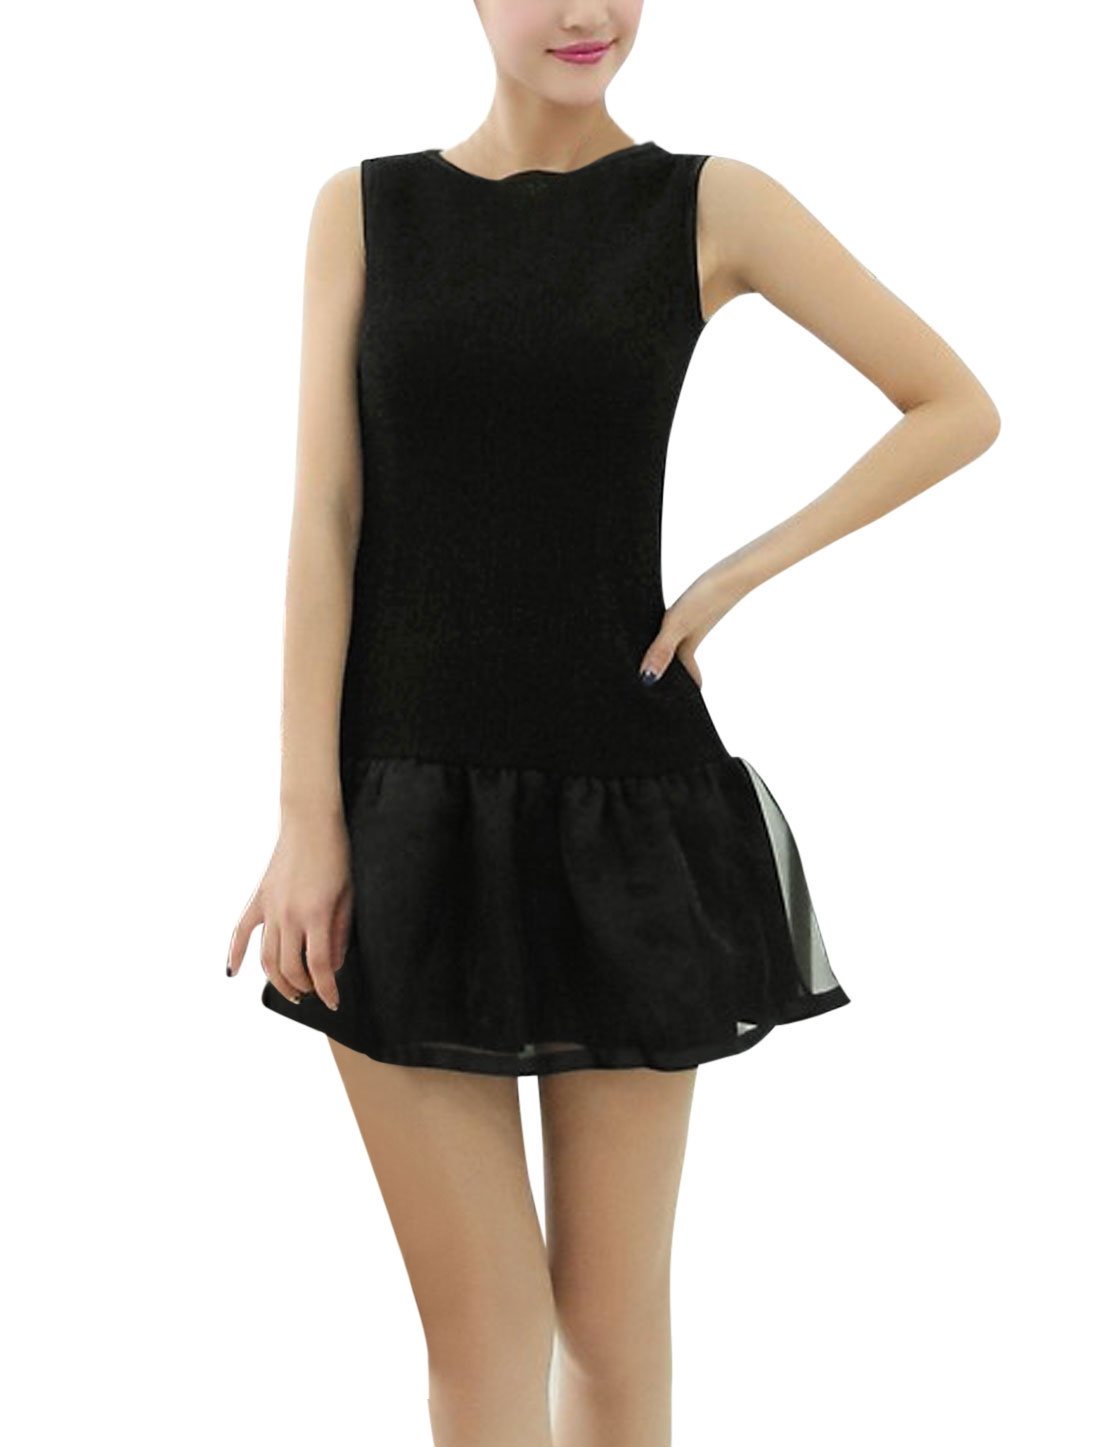 Lady Round Neck Semi Sheer Concealed Zipper Back Skater Dress Black XS